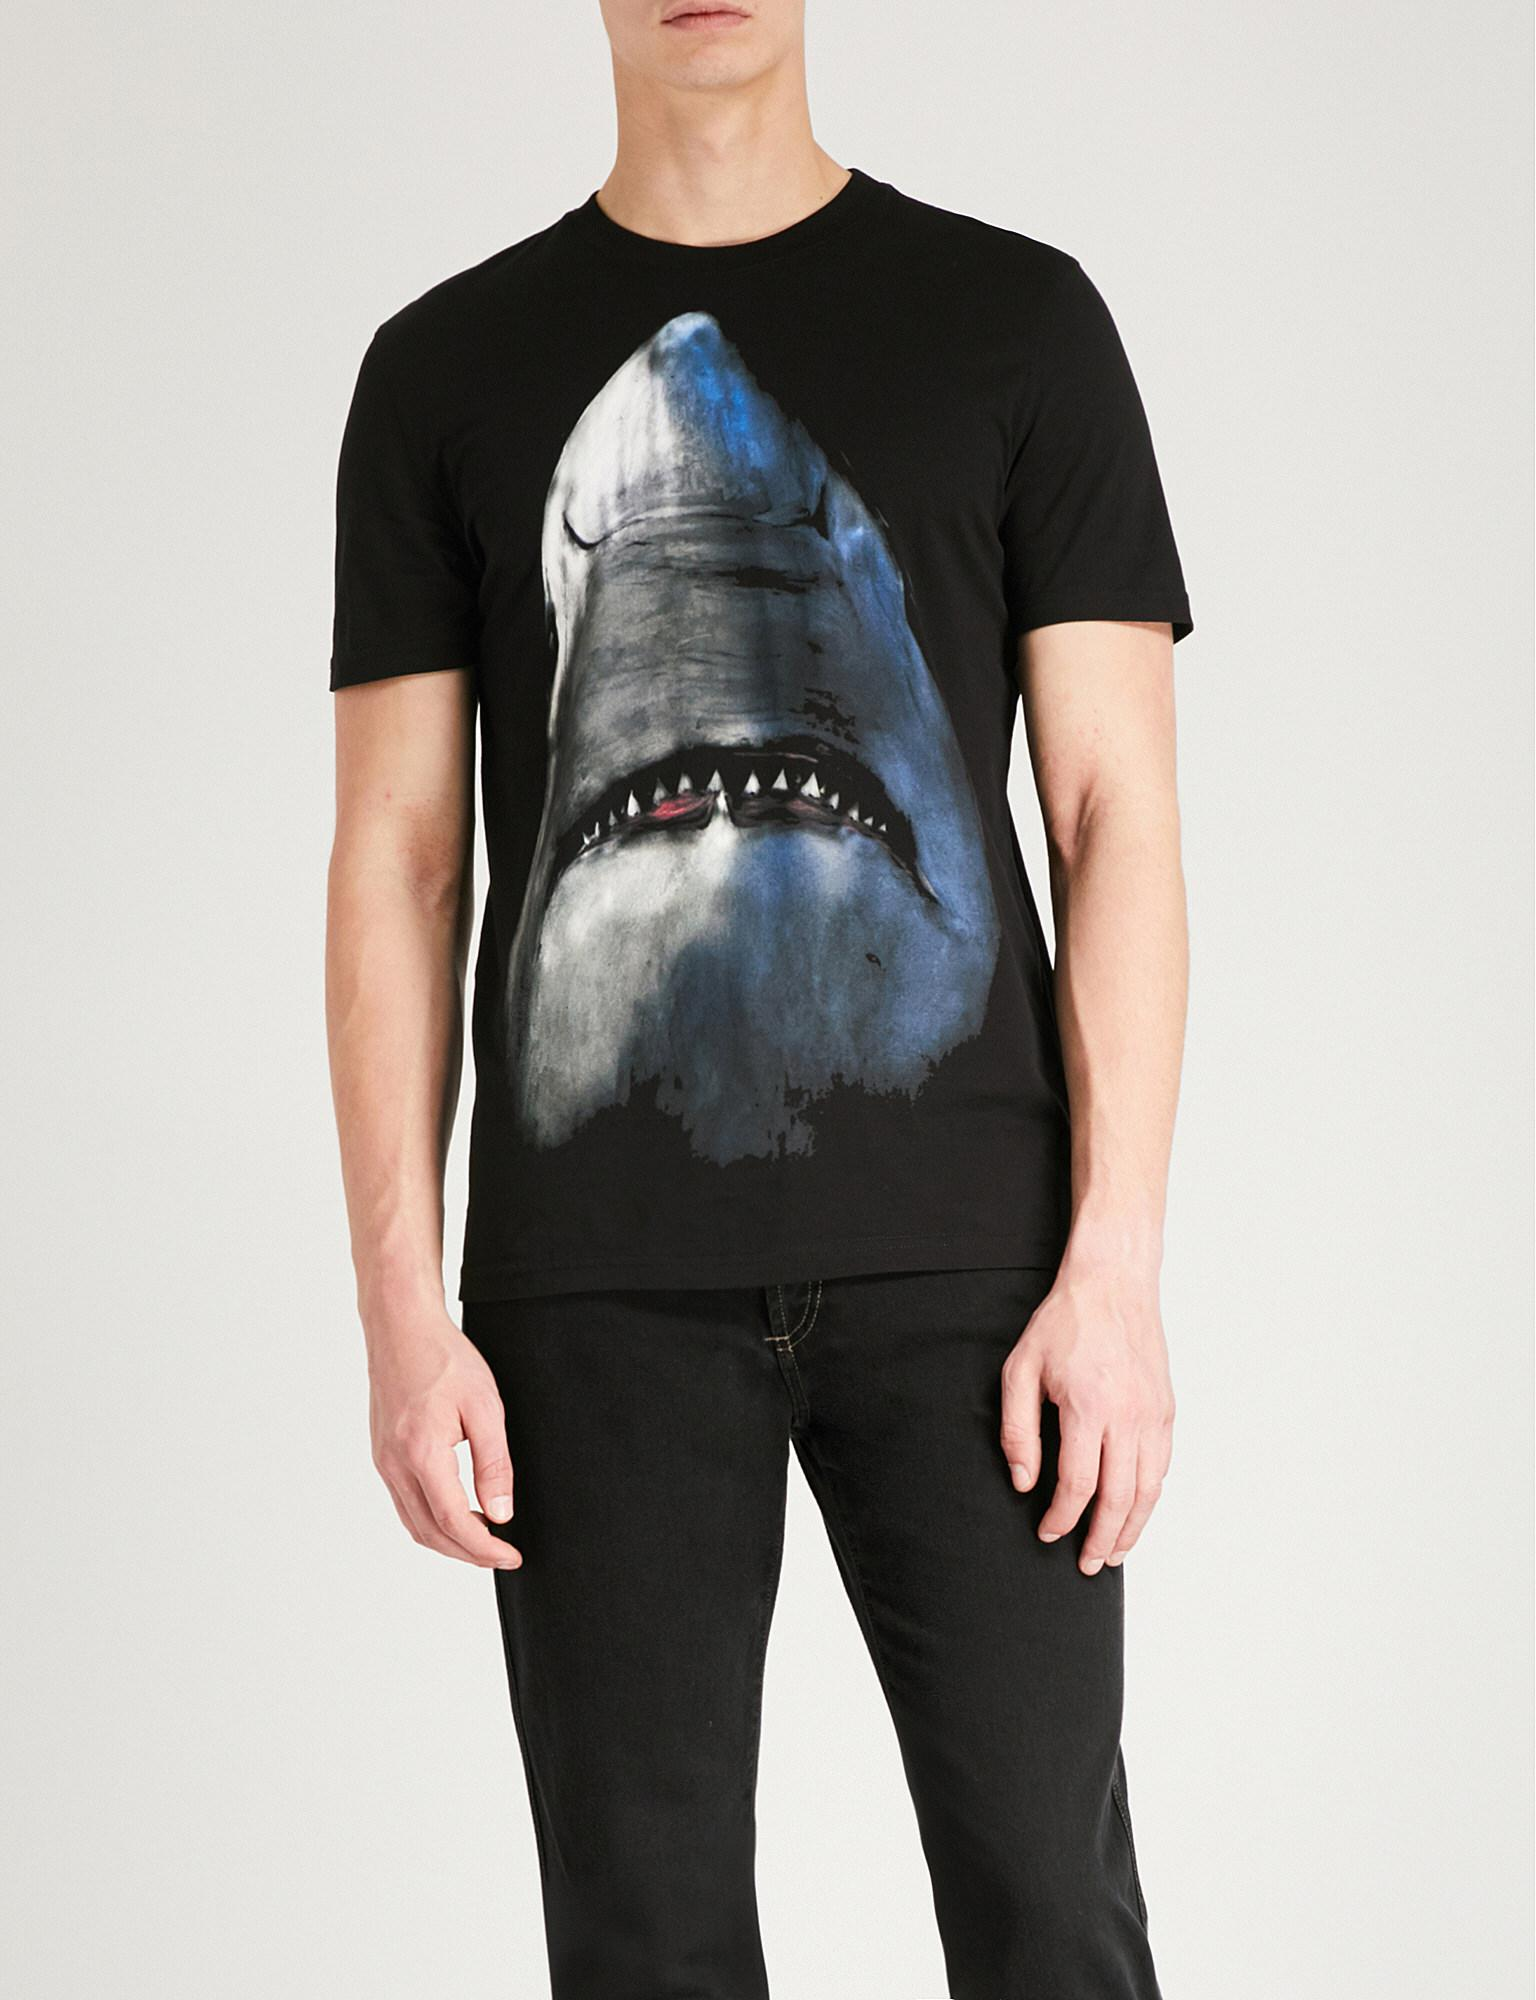 ddc996ed5 Givenchy Shark-print Cotton-jersey T-shirt in Black for Men - Save ...